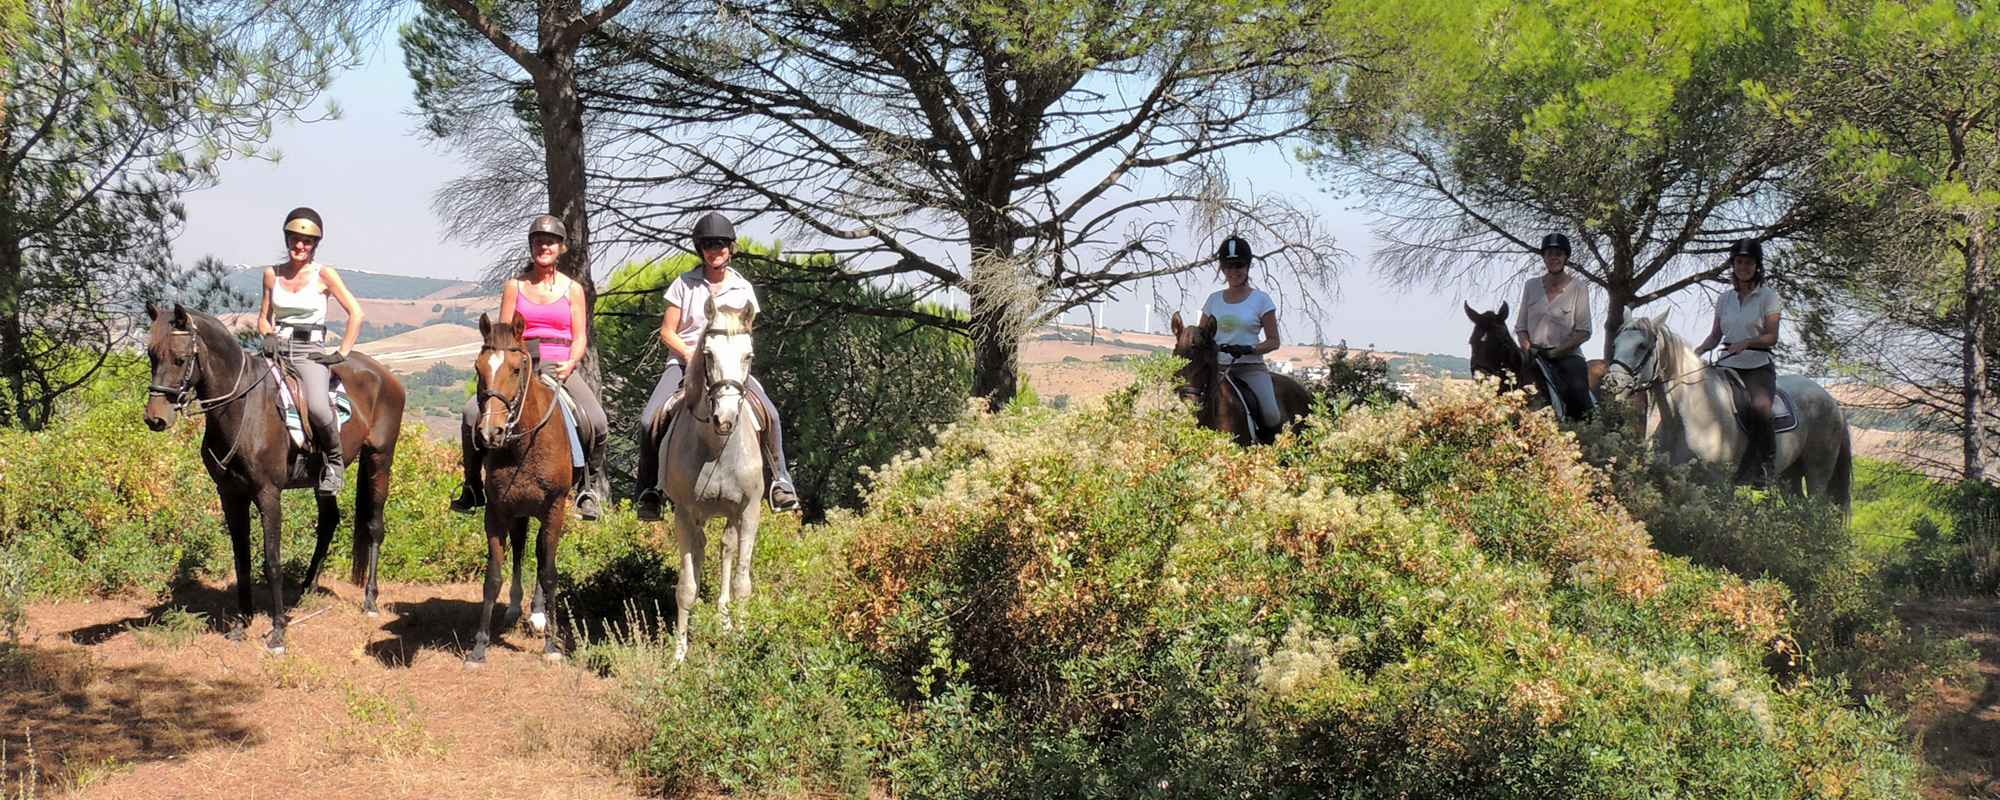 Superb views on a horse riding holiday